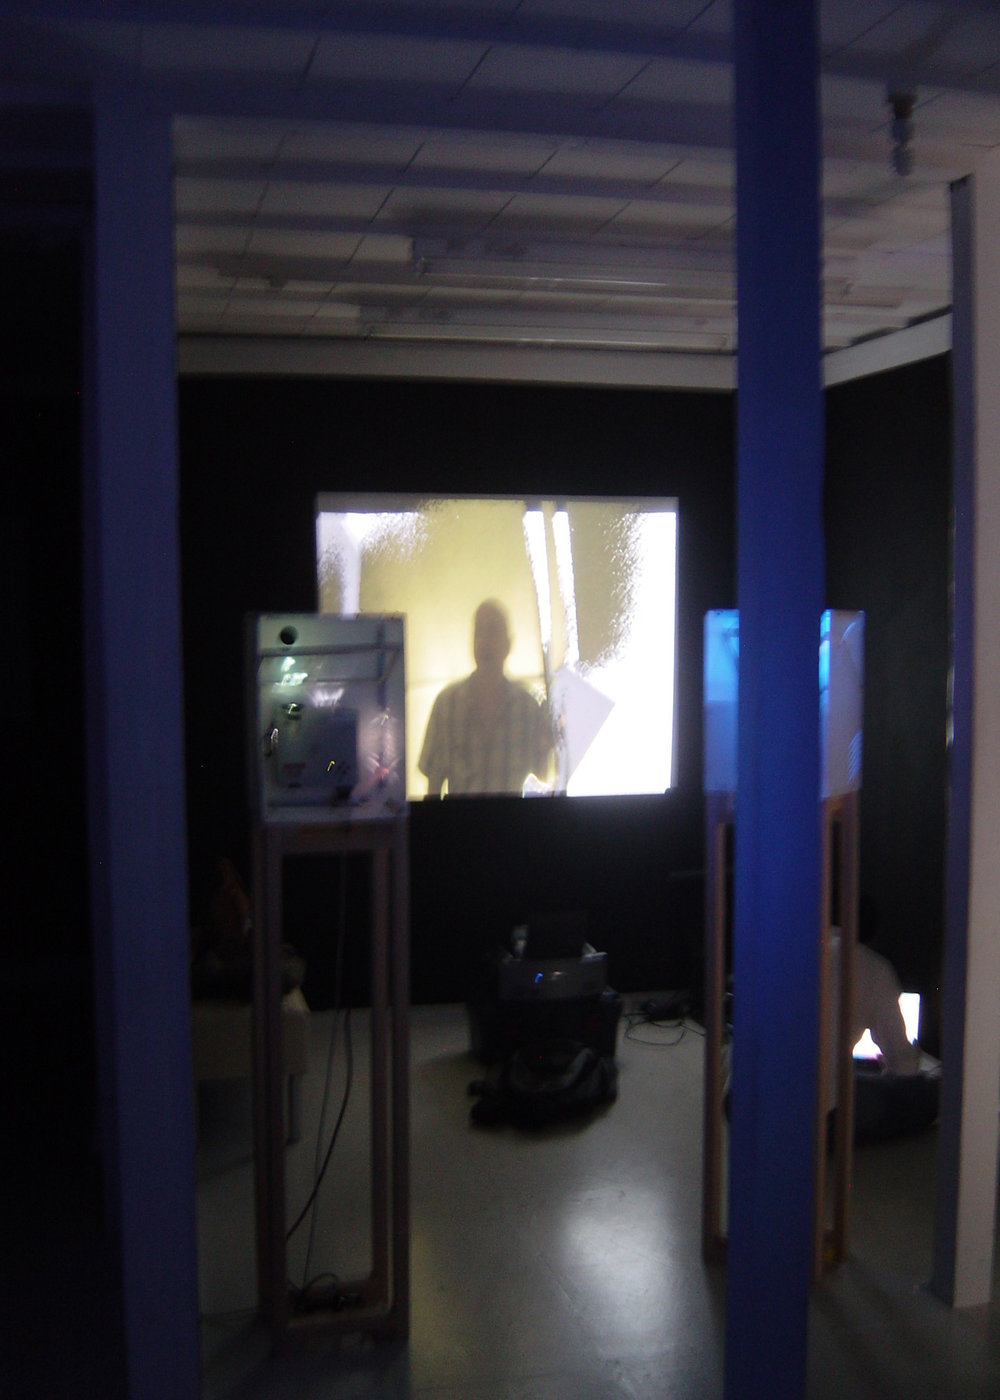 Fig.22 - 'Intangible Spaces' Nathan Cohen Tokyo projectors and interactive video set up